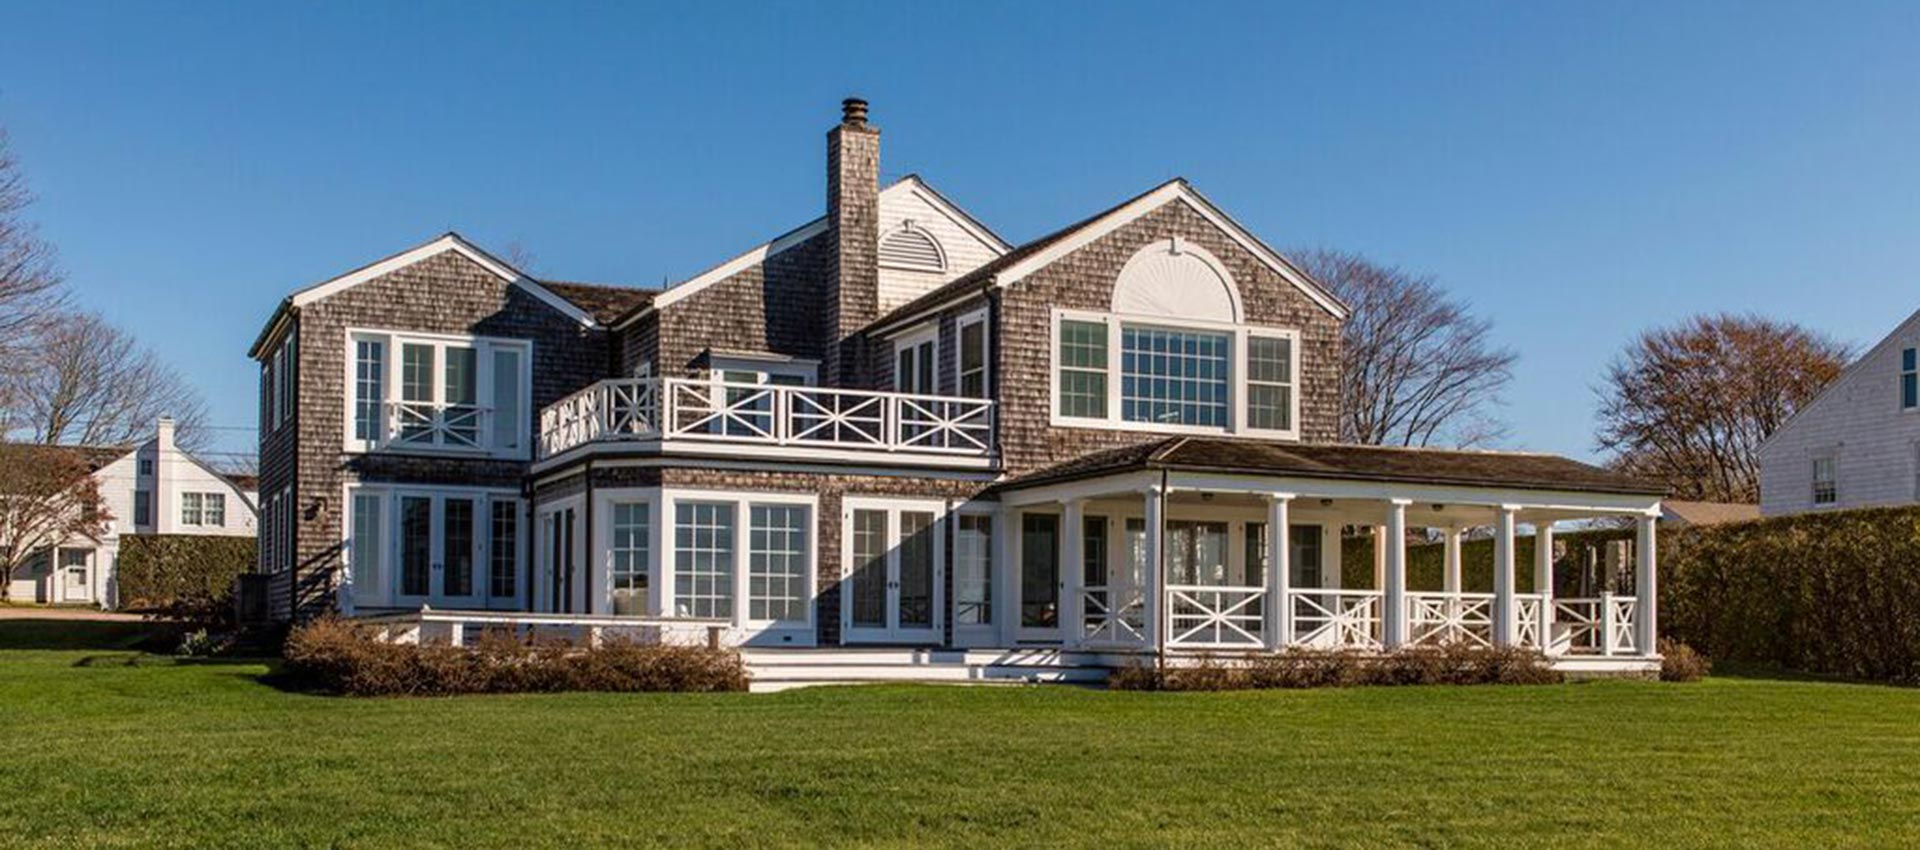 Long Island Sound Shingle Style